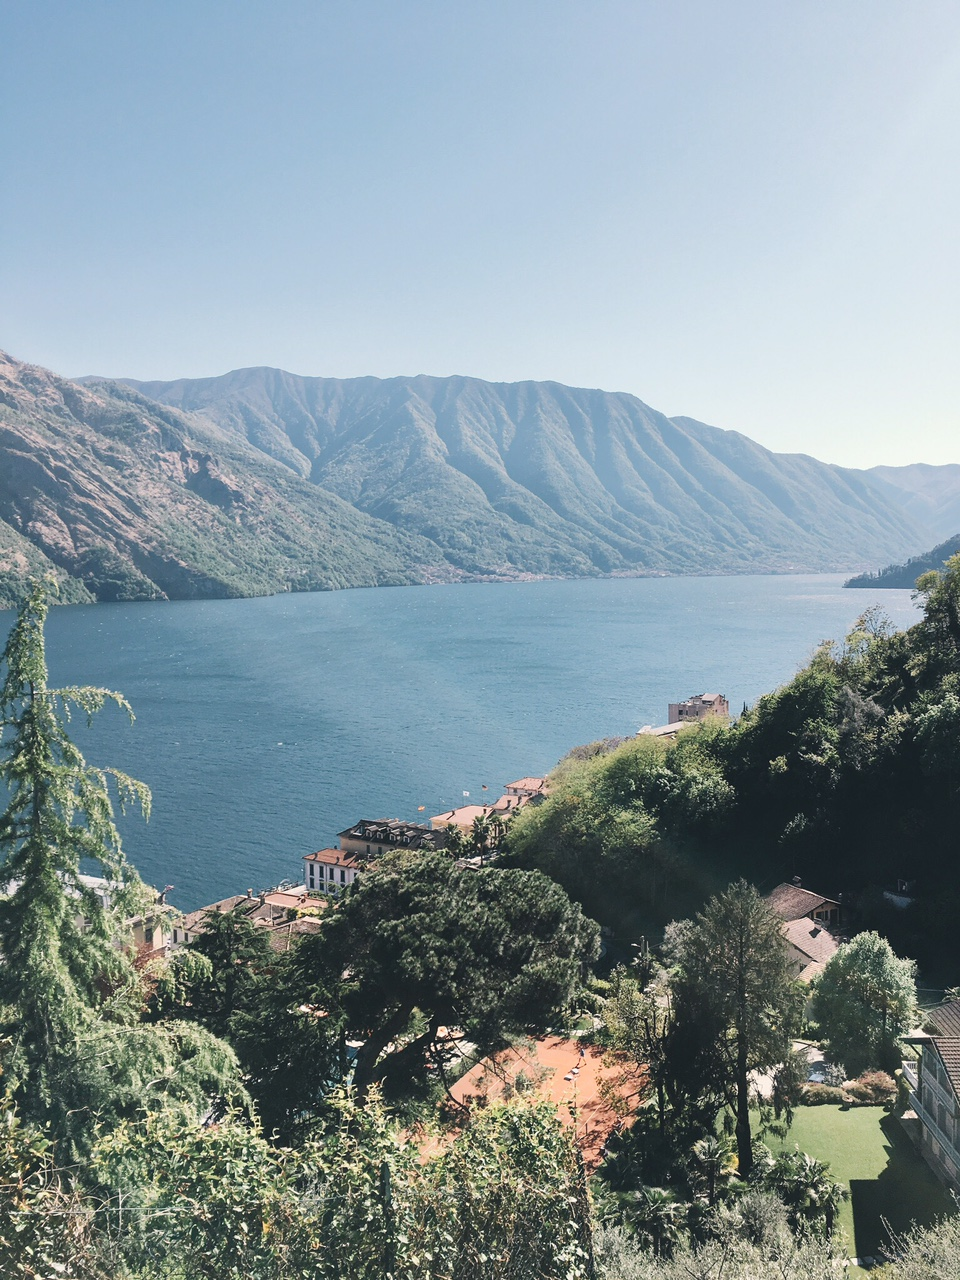 View of Lake Como mountains and lake from top of hike